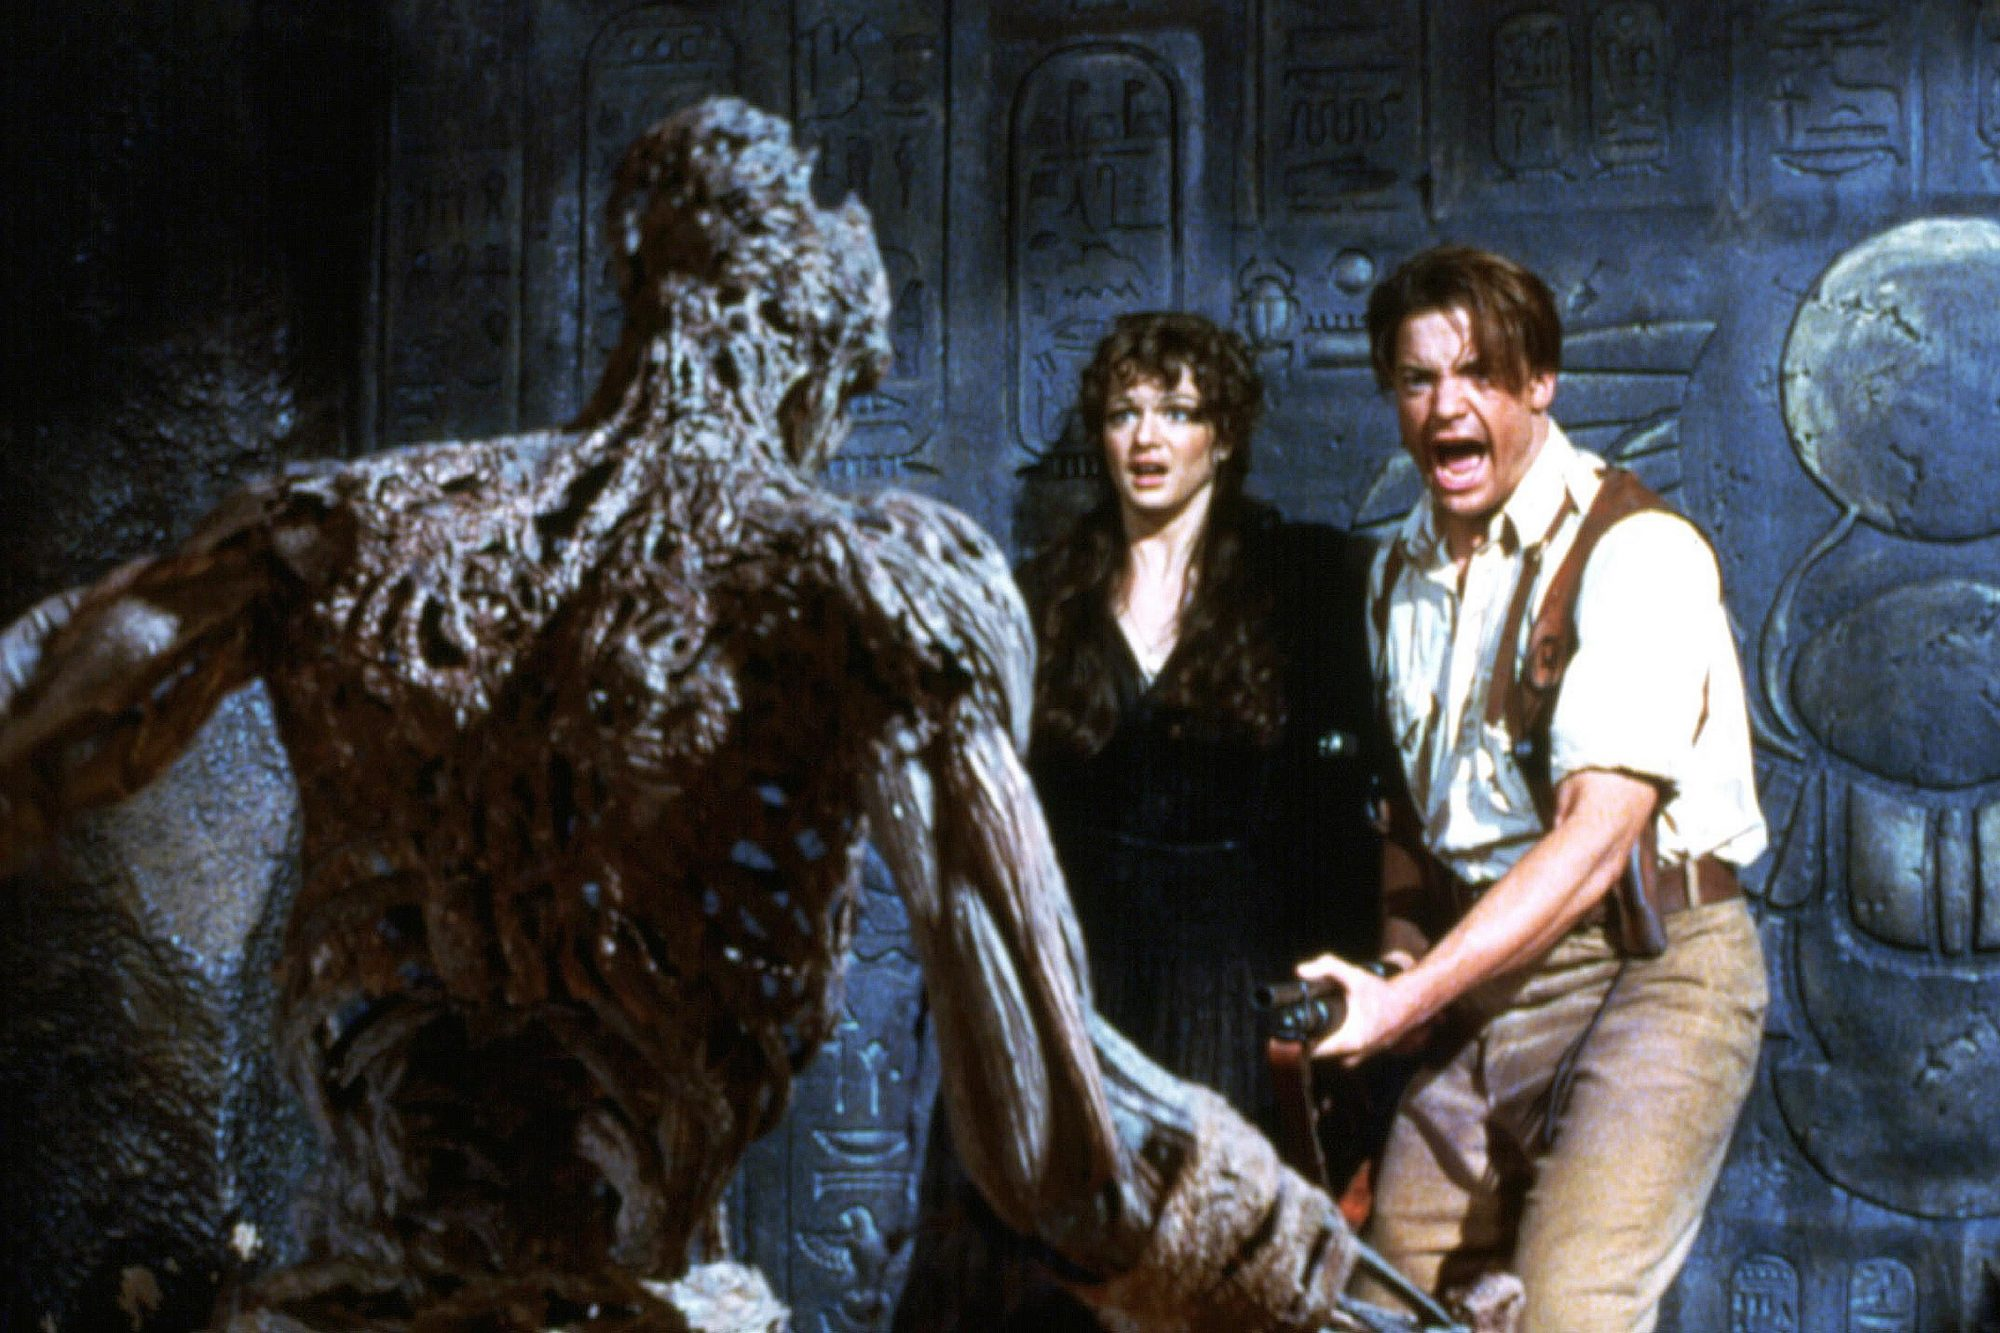 Unwrapping the Mummy Timeline